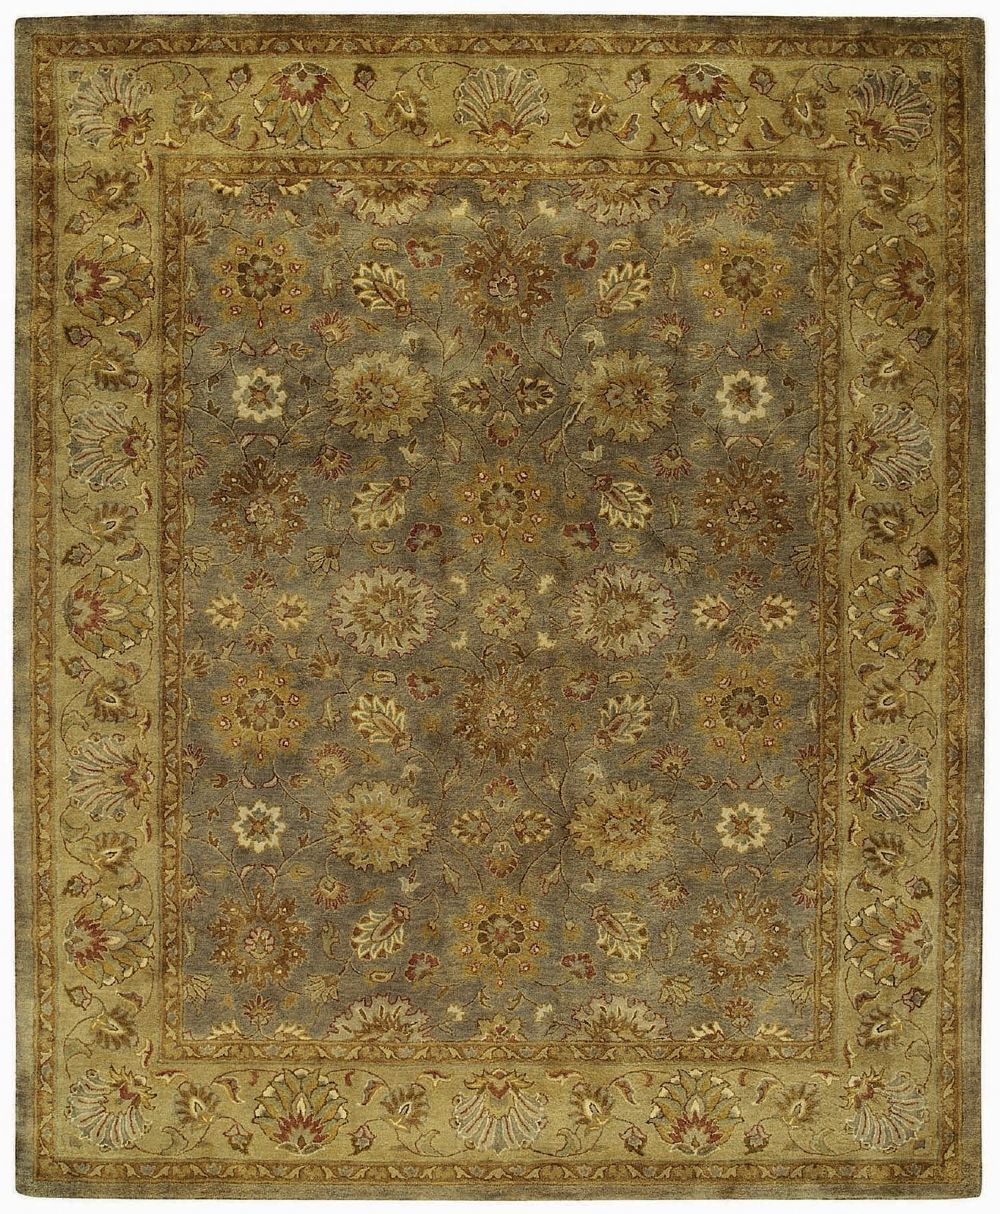 capel orinda-sultanabad traditional area rug collection